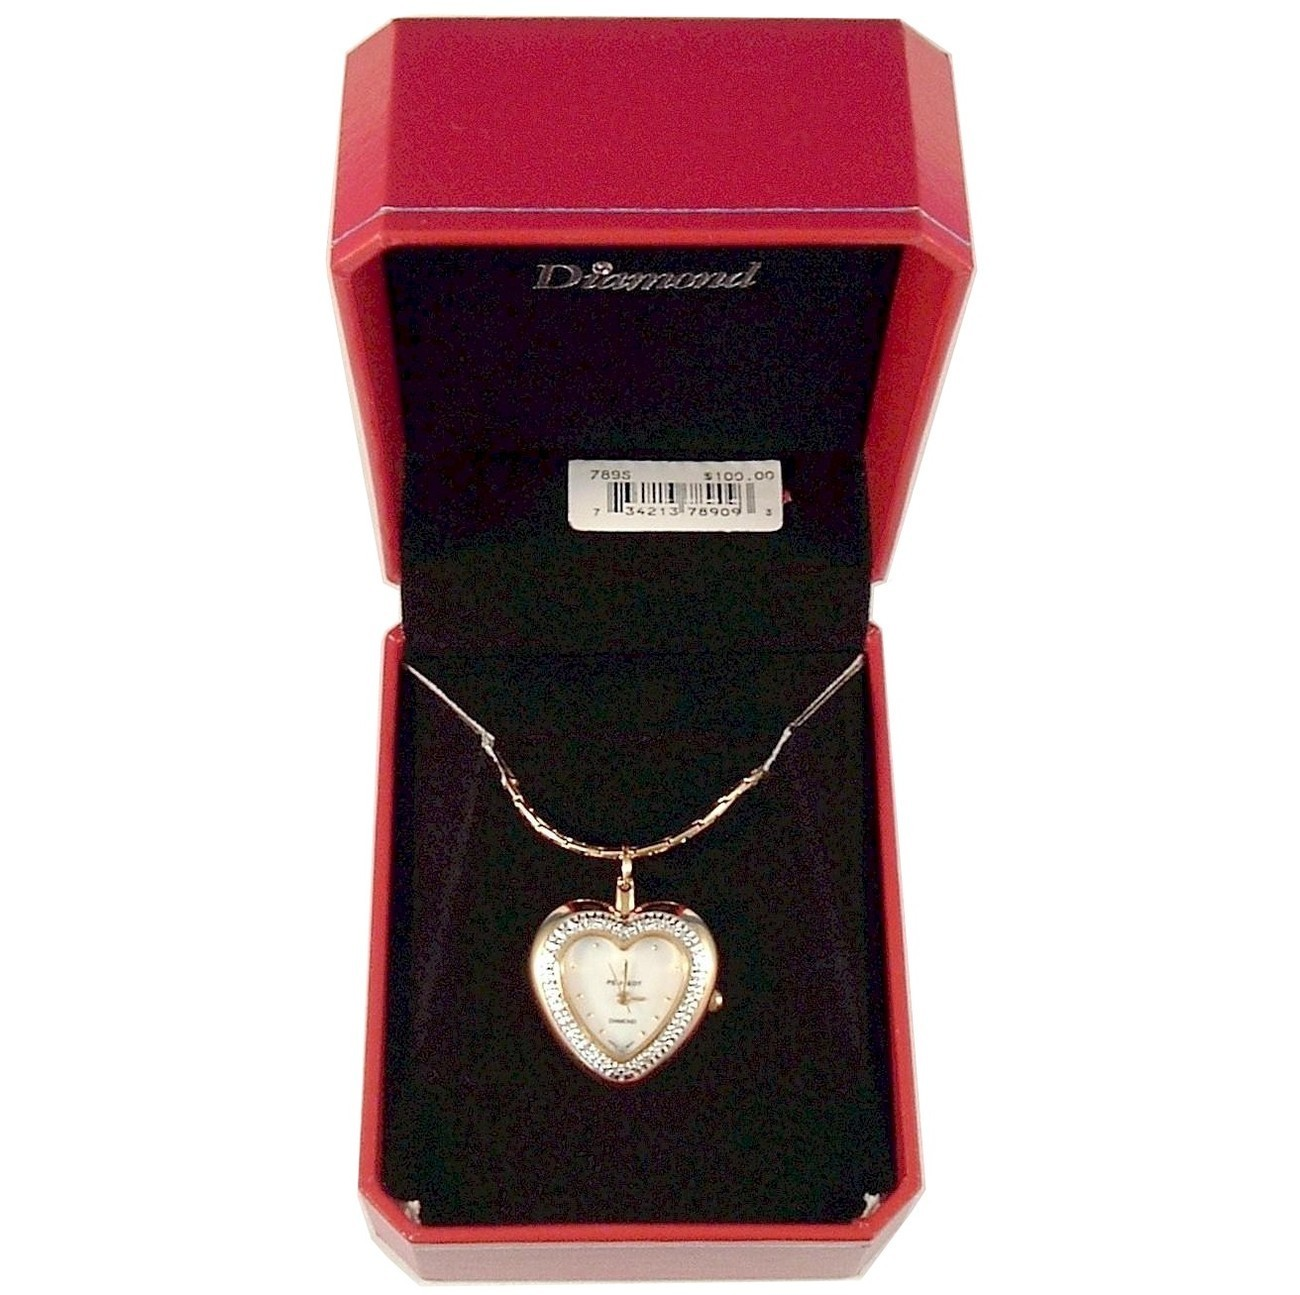 PEUGEOT Heart Watch Diamond Chip Pendant Necklace Gold Metal